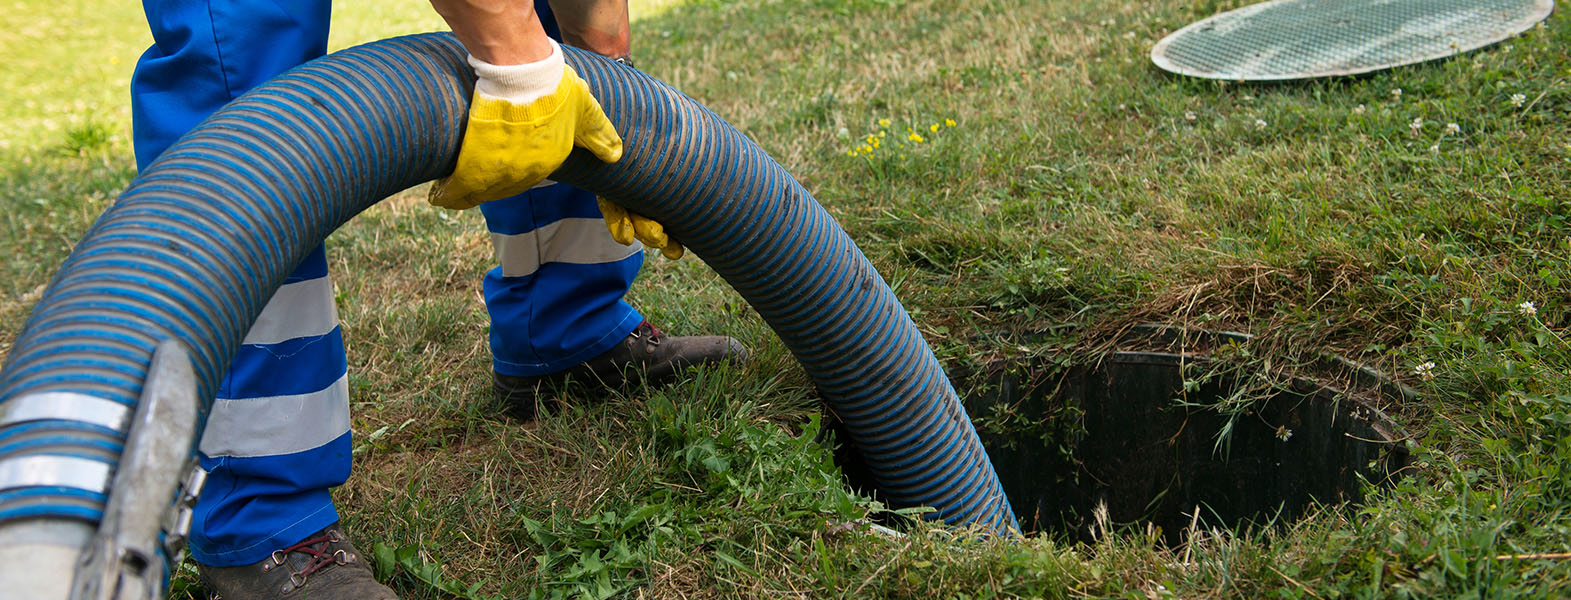 Glen Burnie Septic Tank Cleaning, Septic Company and Dumpster Cleaning